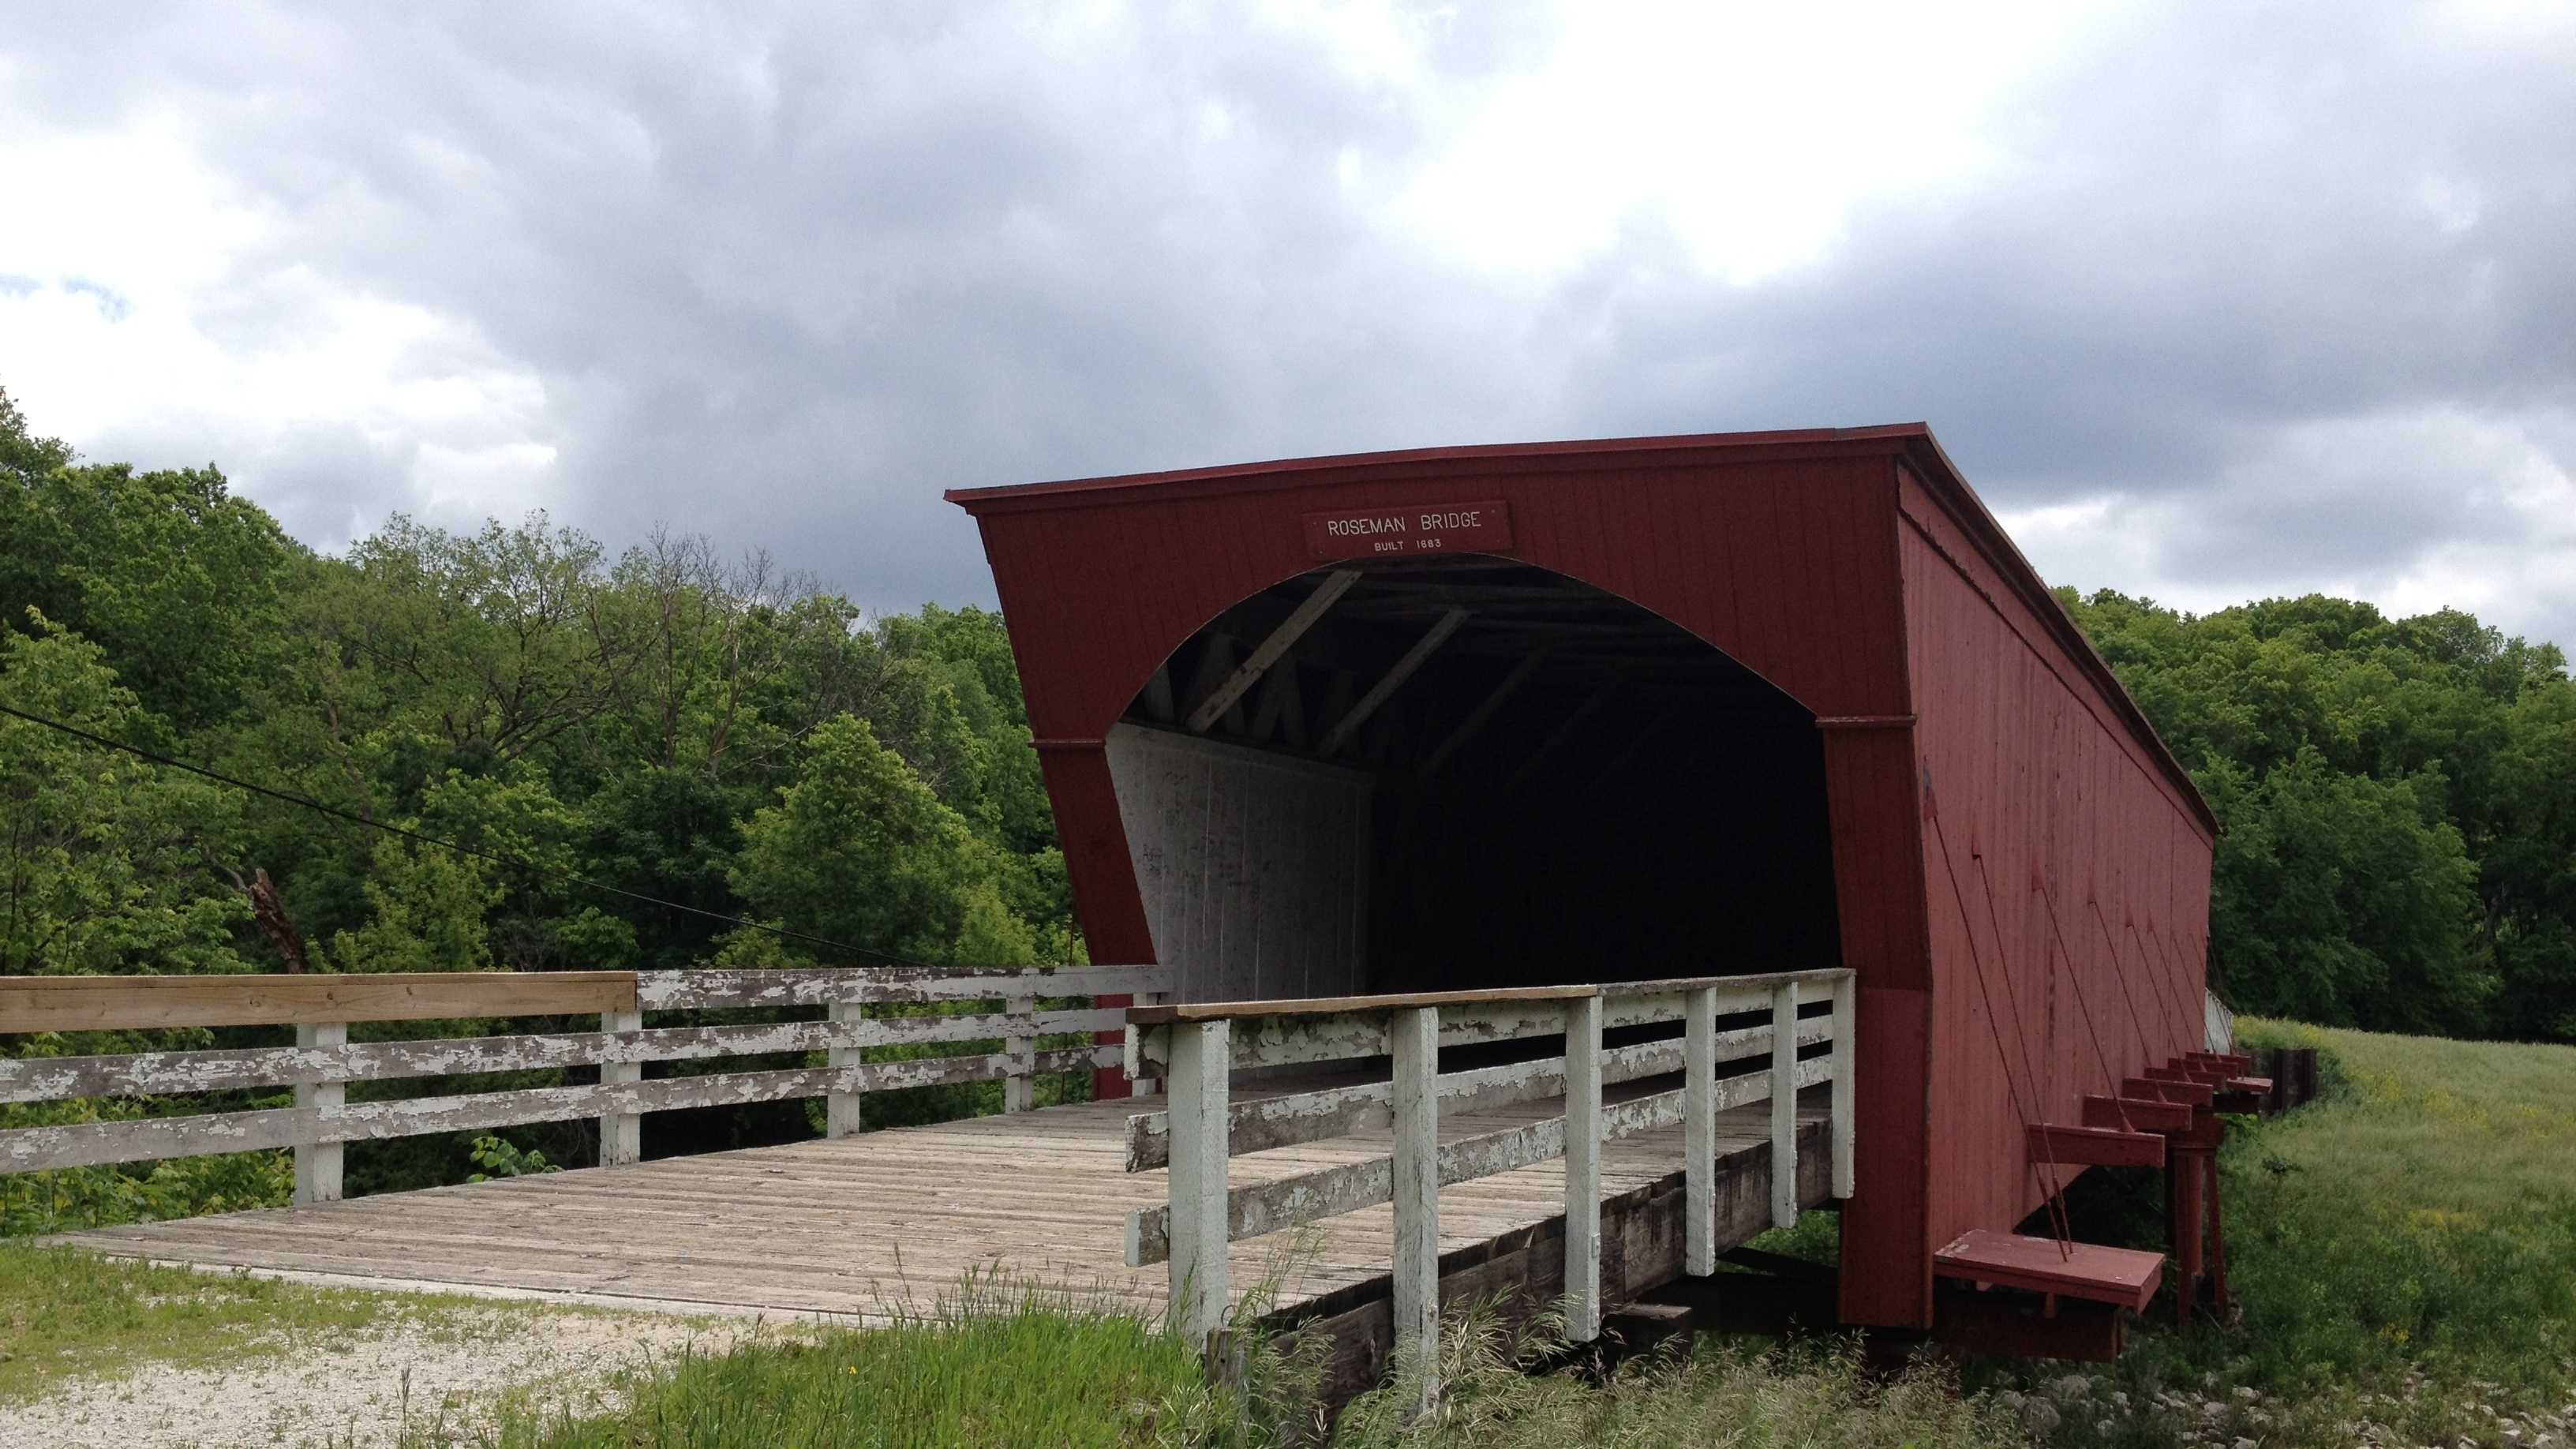 Roseman Bridge in Madison County, Iowa